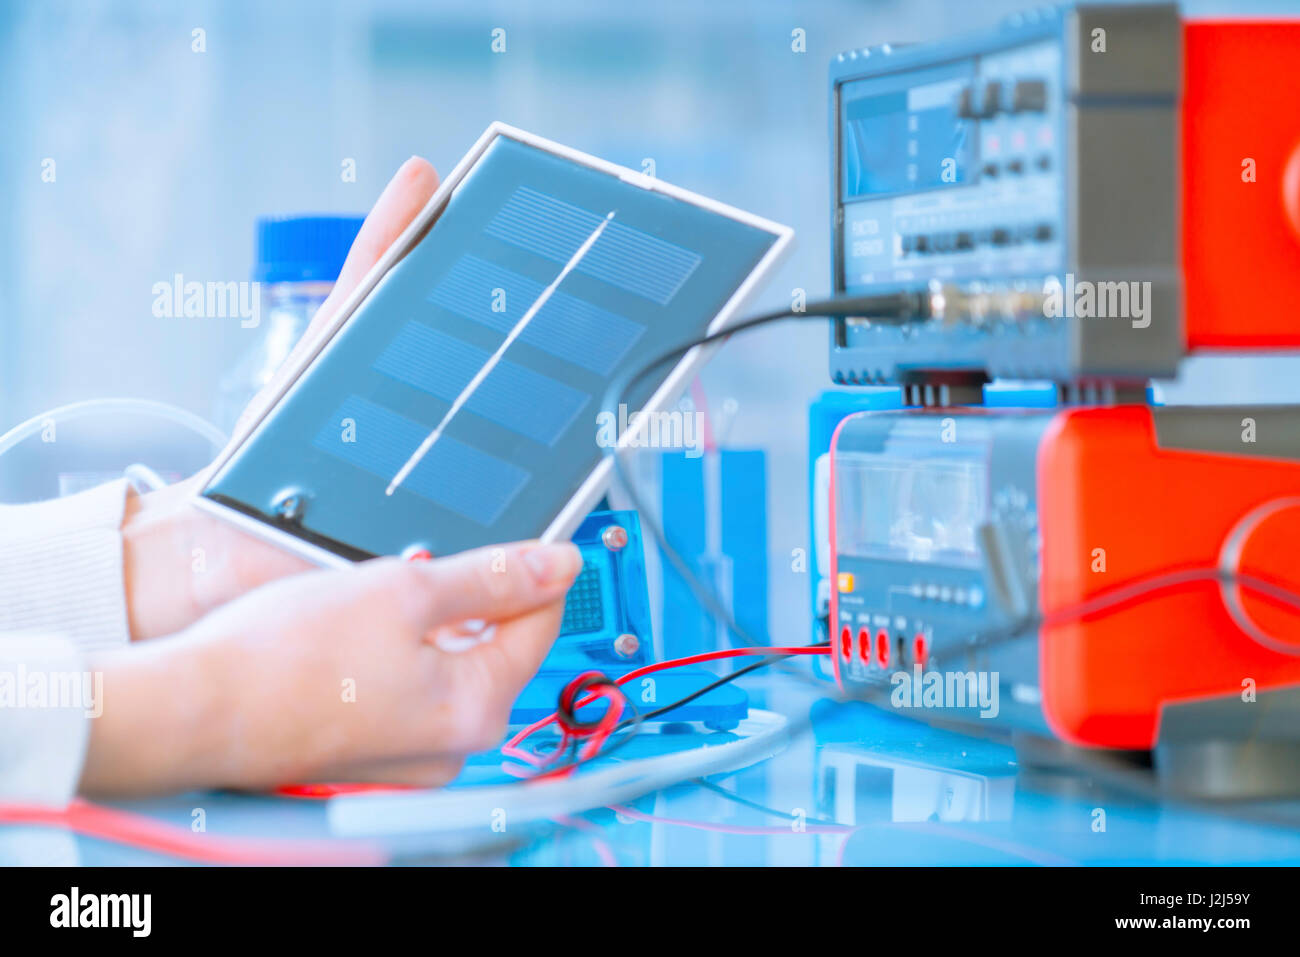 Solar Cell Circuit Stock Photos Images Scientist With Fuel In Laboratory Image